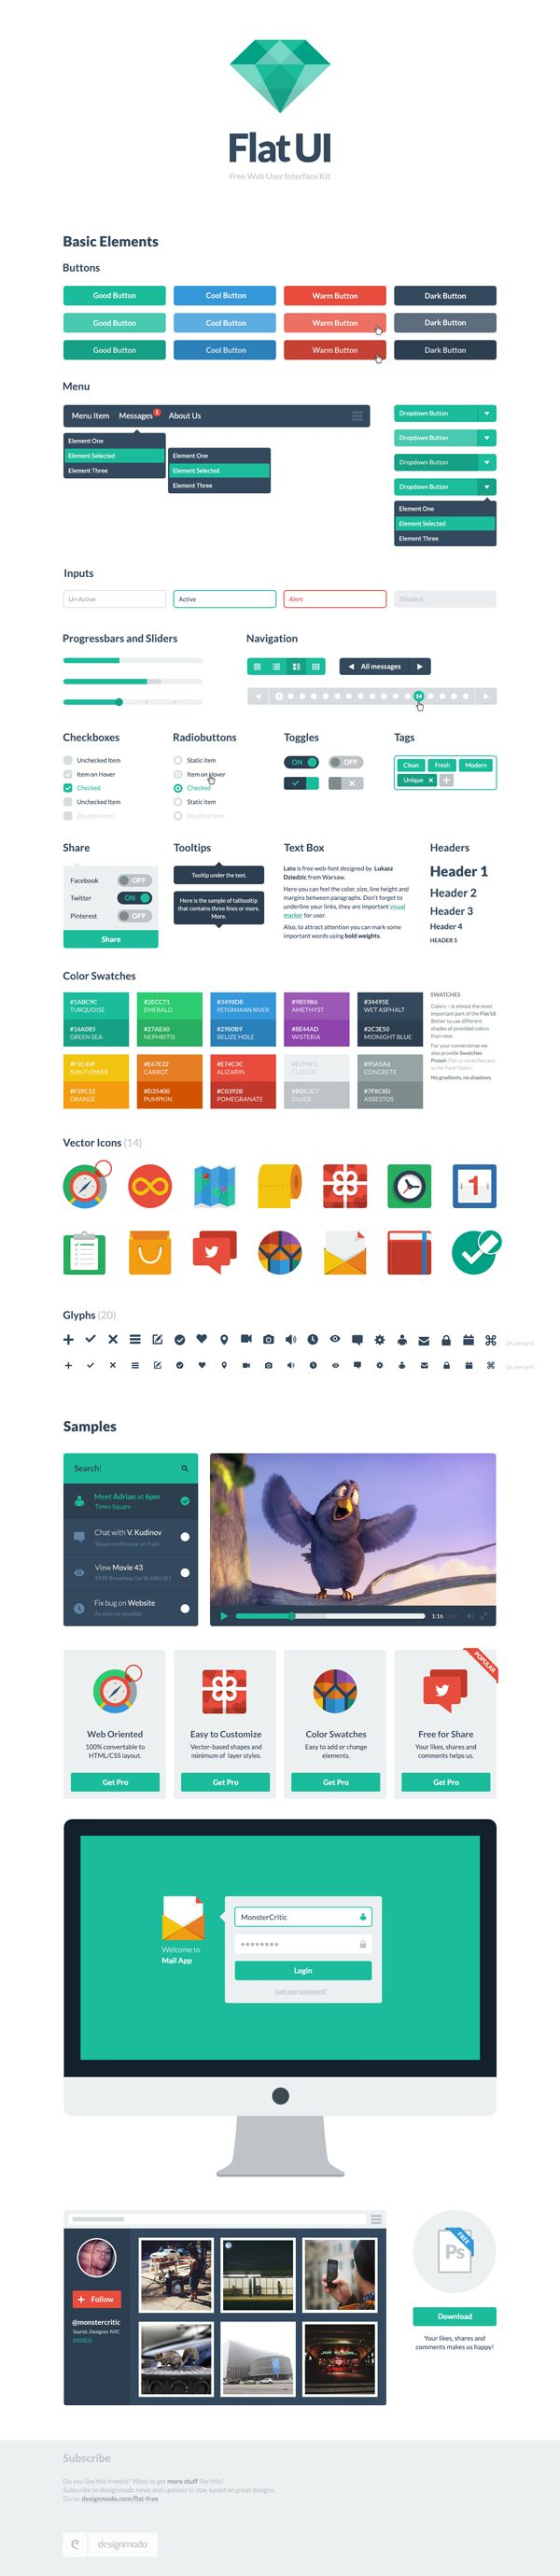 Flat UI Kit PSD and HTML Framework by Designmodo. #freebie #ui #flat #psd #html #download #framework